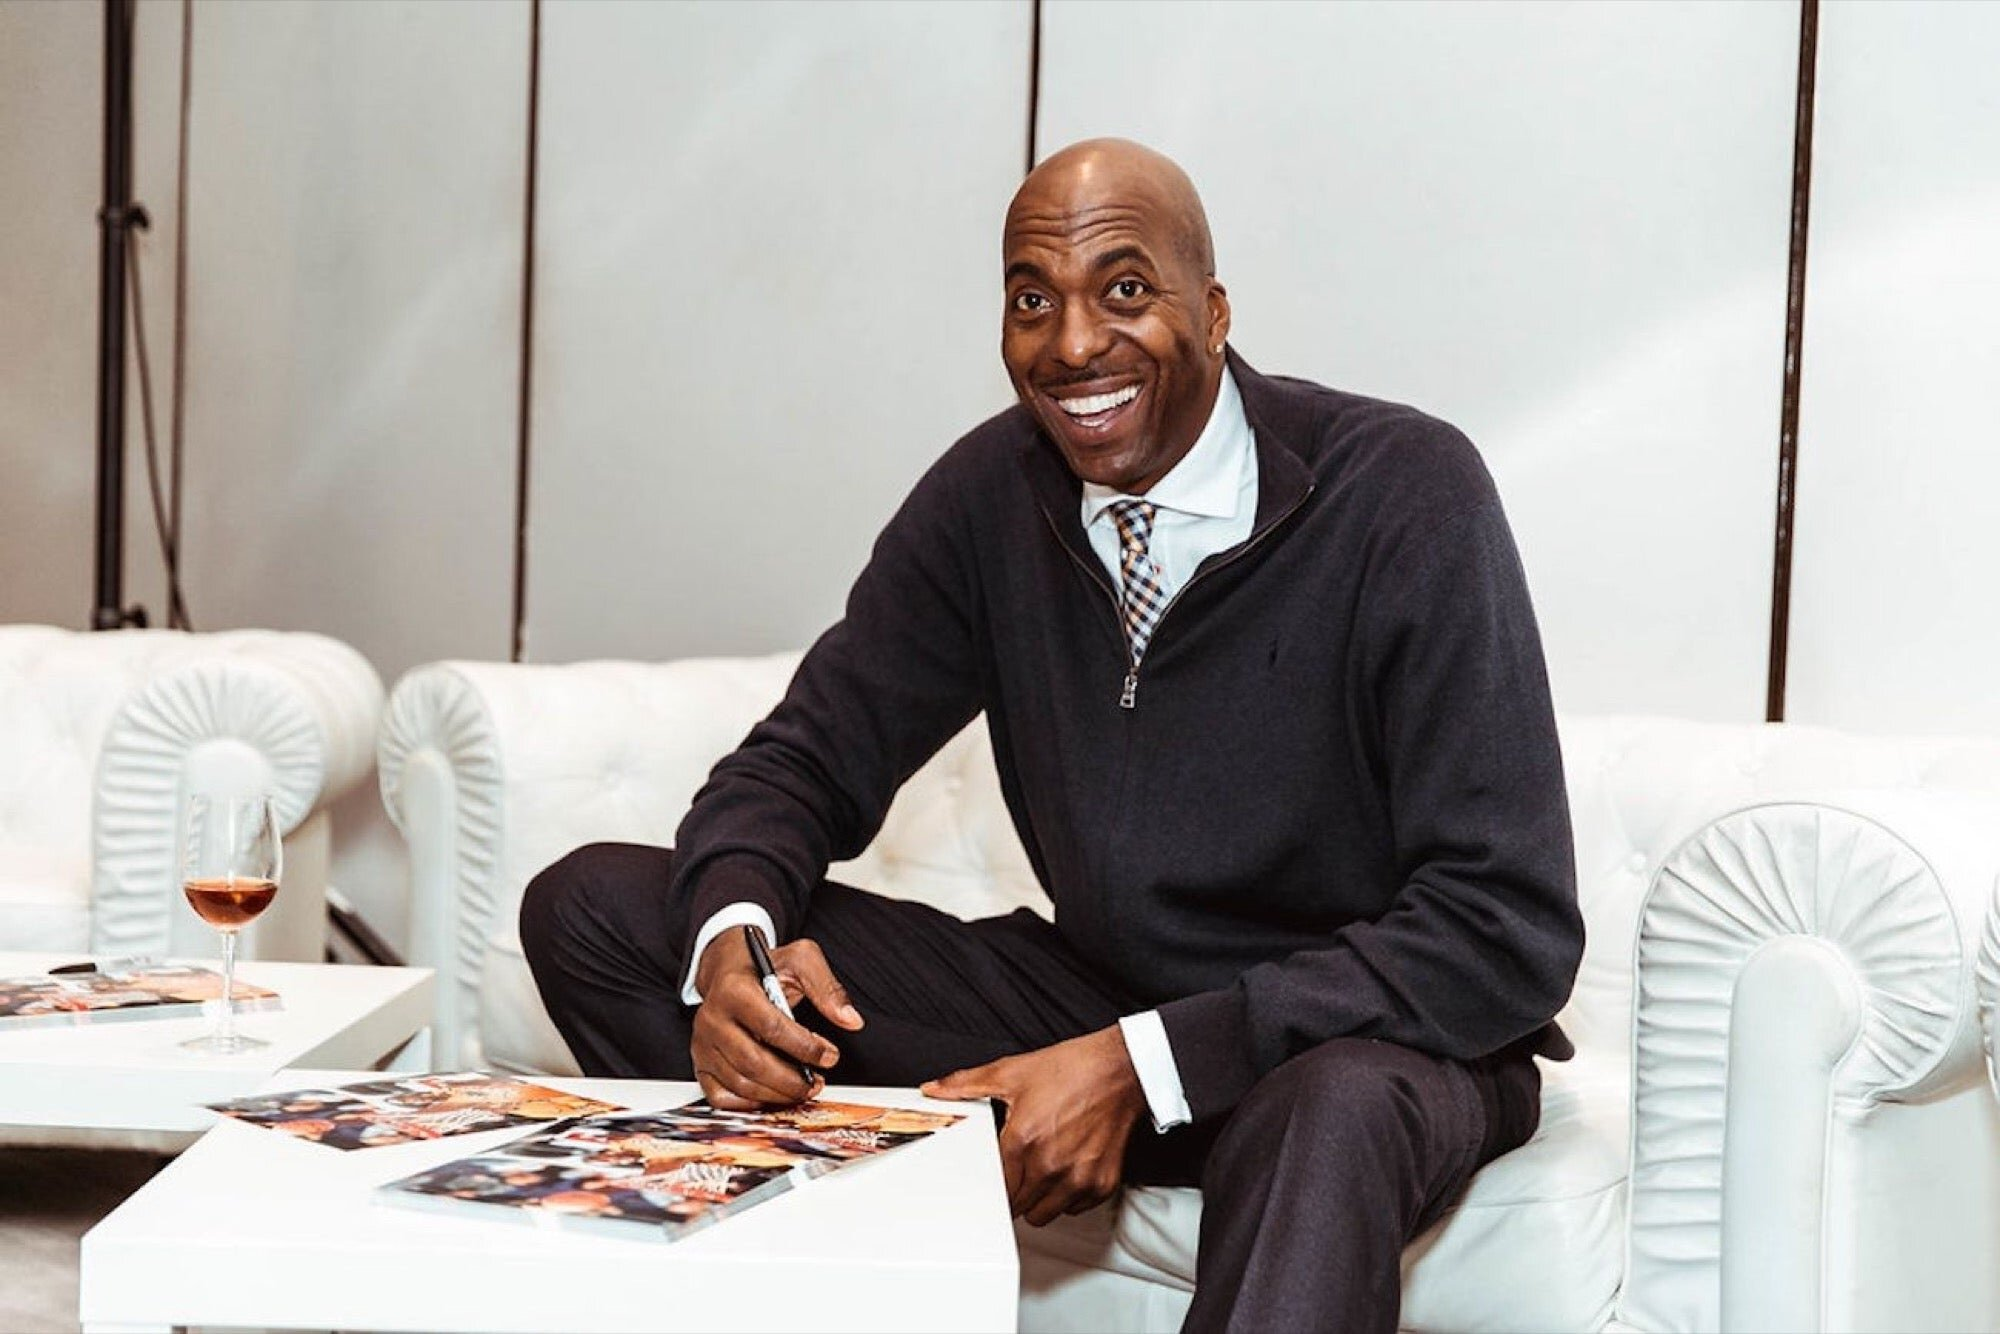 John Salley (Former NBA Player)